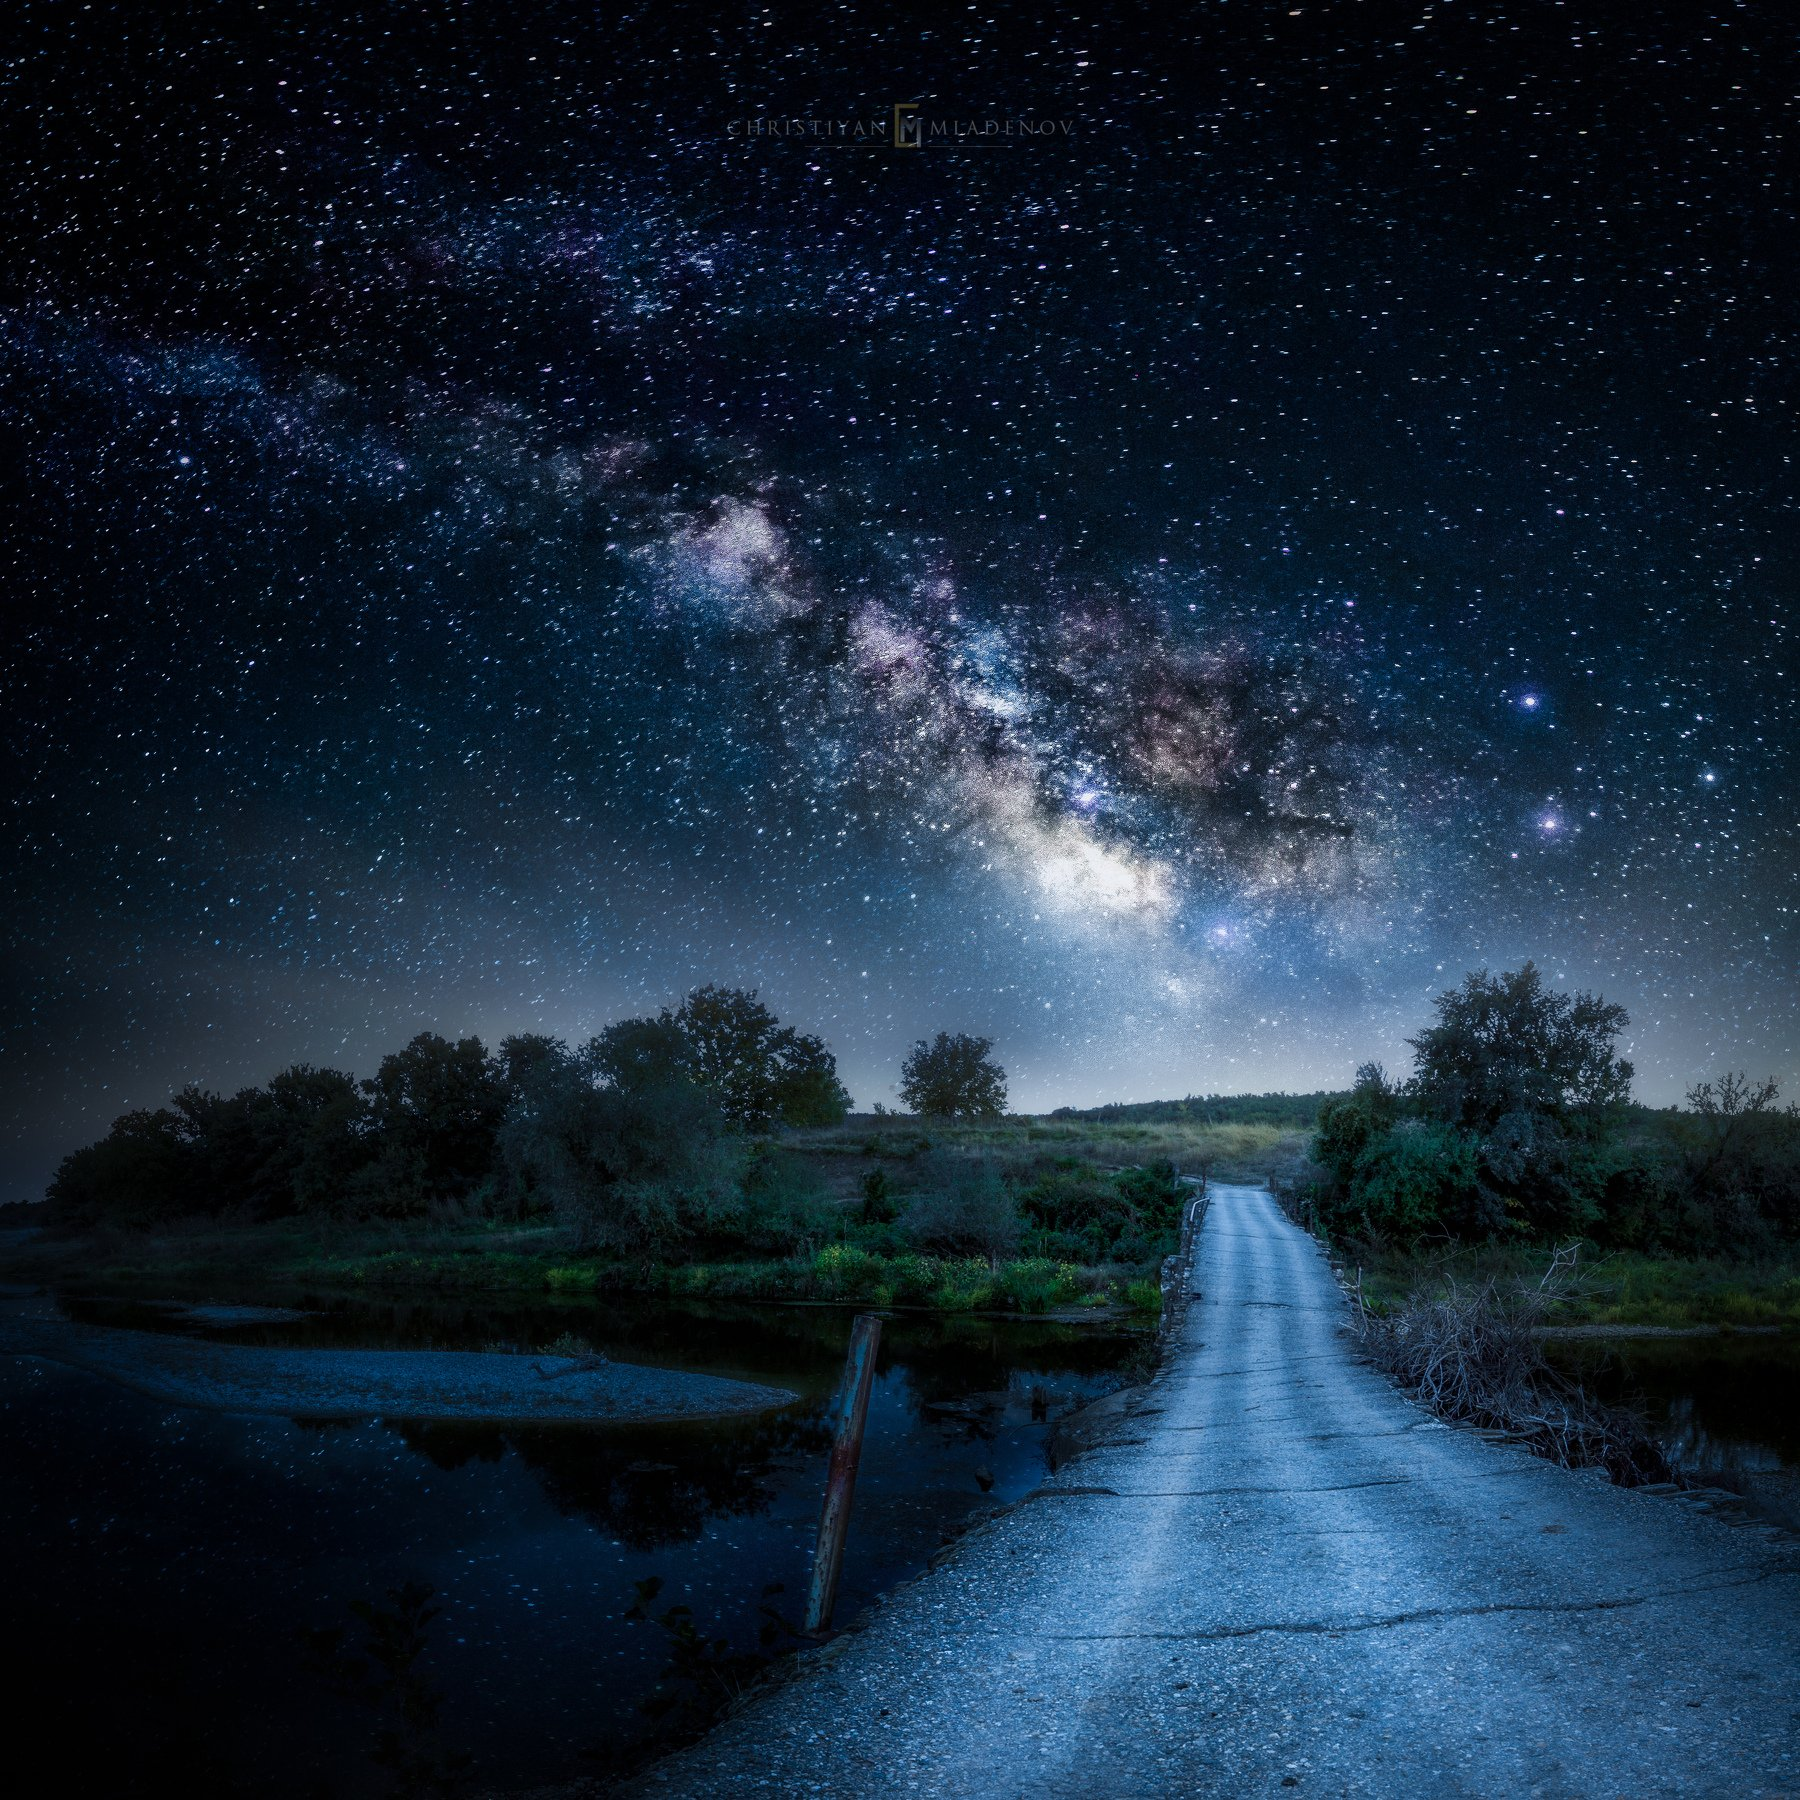 astrophotography, astroscape, astronomy, galaxy, milky way, nightscape, night, sky, stars, long exposure, nature, bulgaria, space, panorama, river, summer, Кристиян Младенов